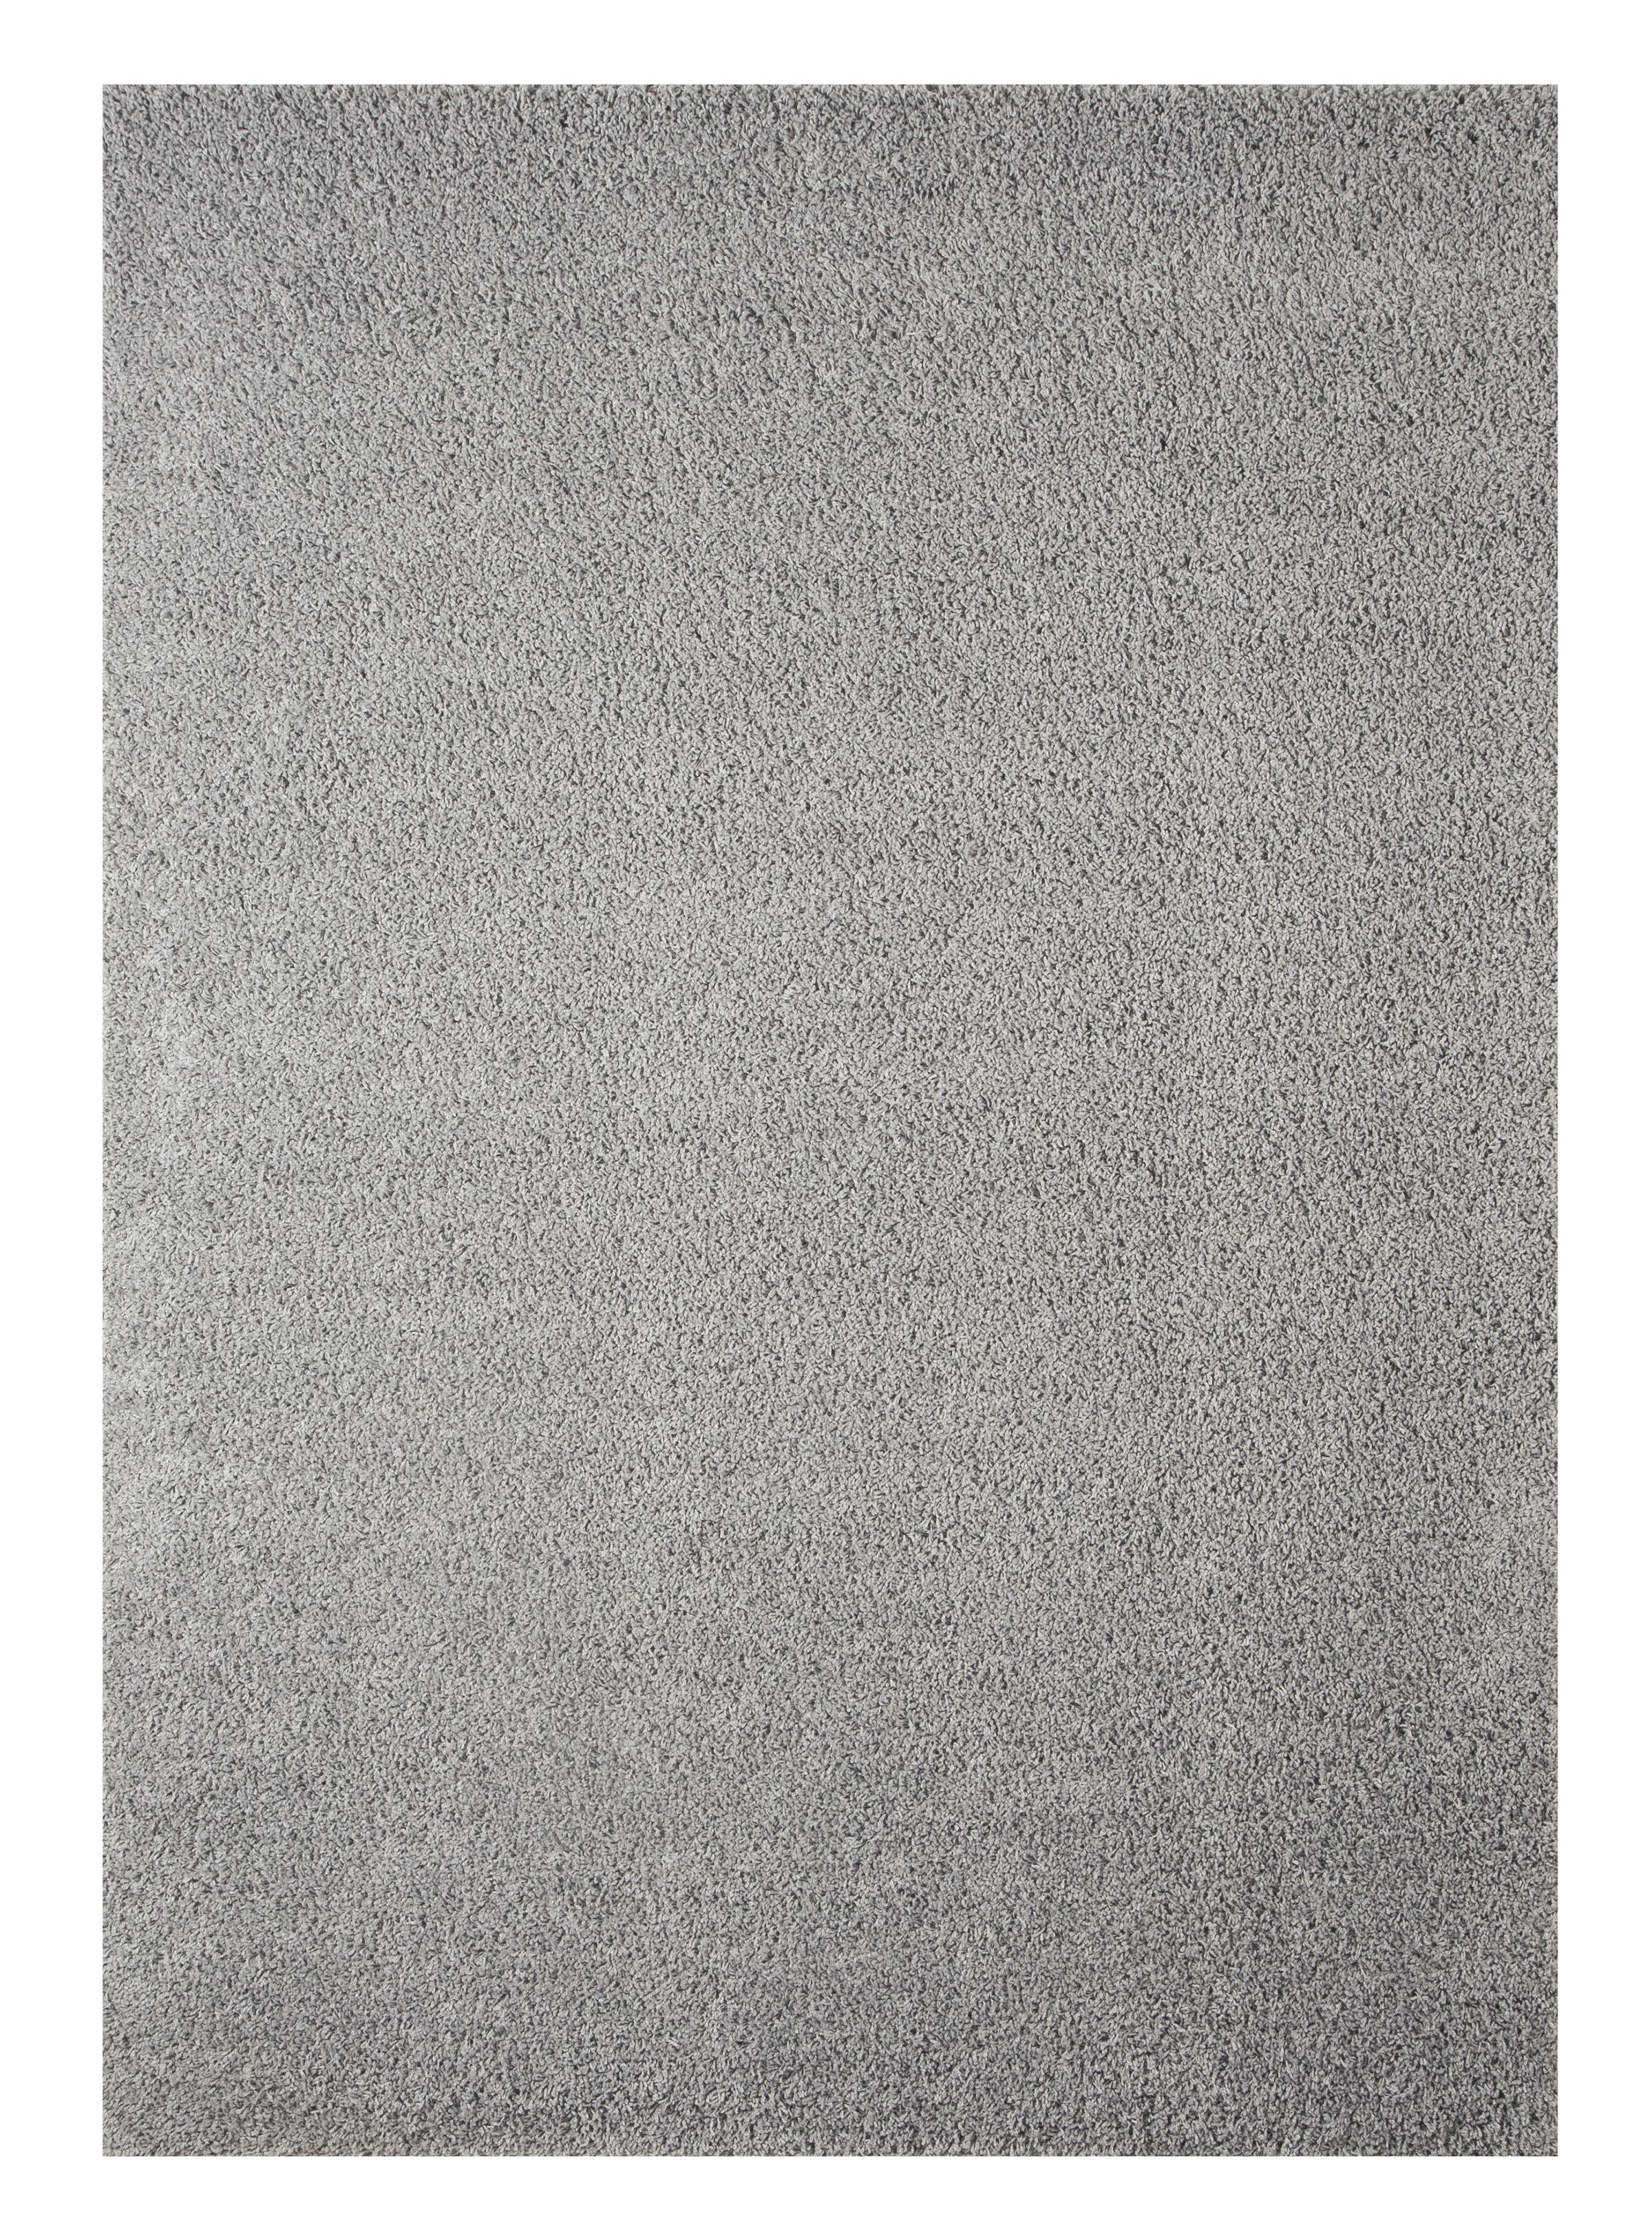 Contemporary Area Rugs 5x7 Rug by Signature Design by Ashley at HomeWorld Furniture